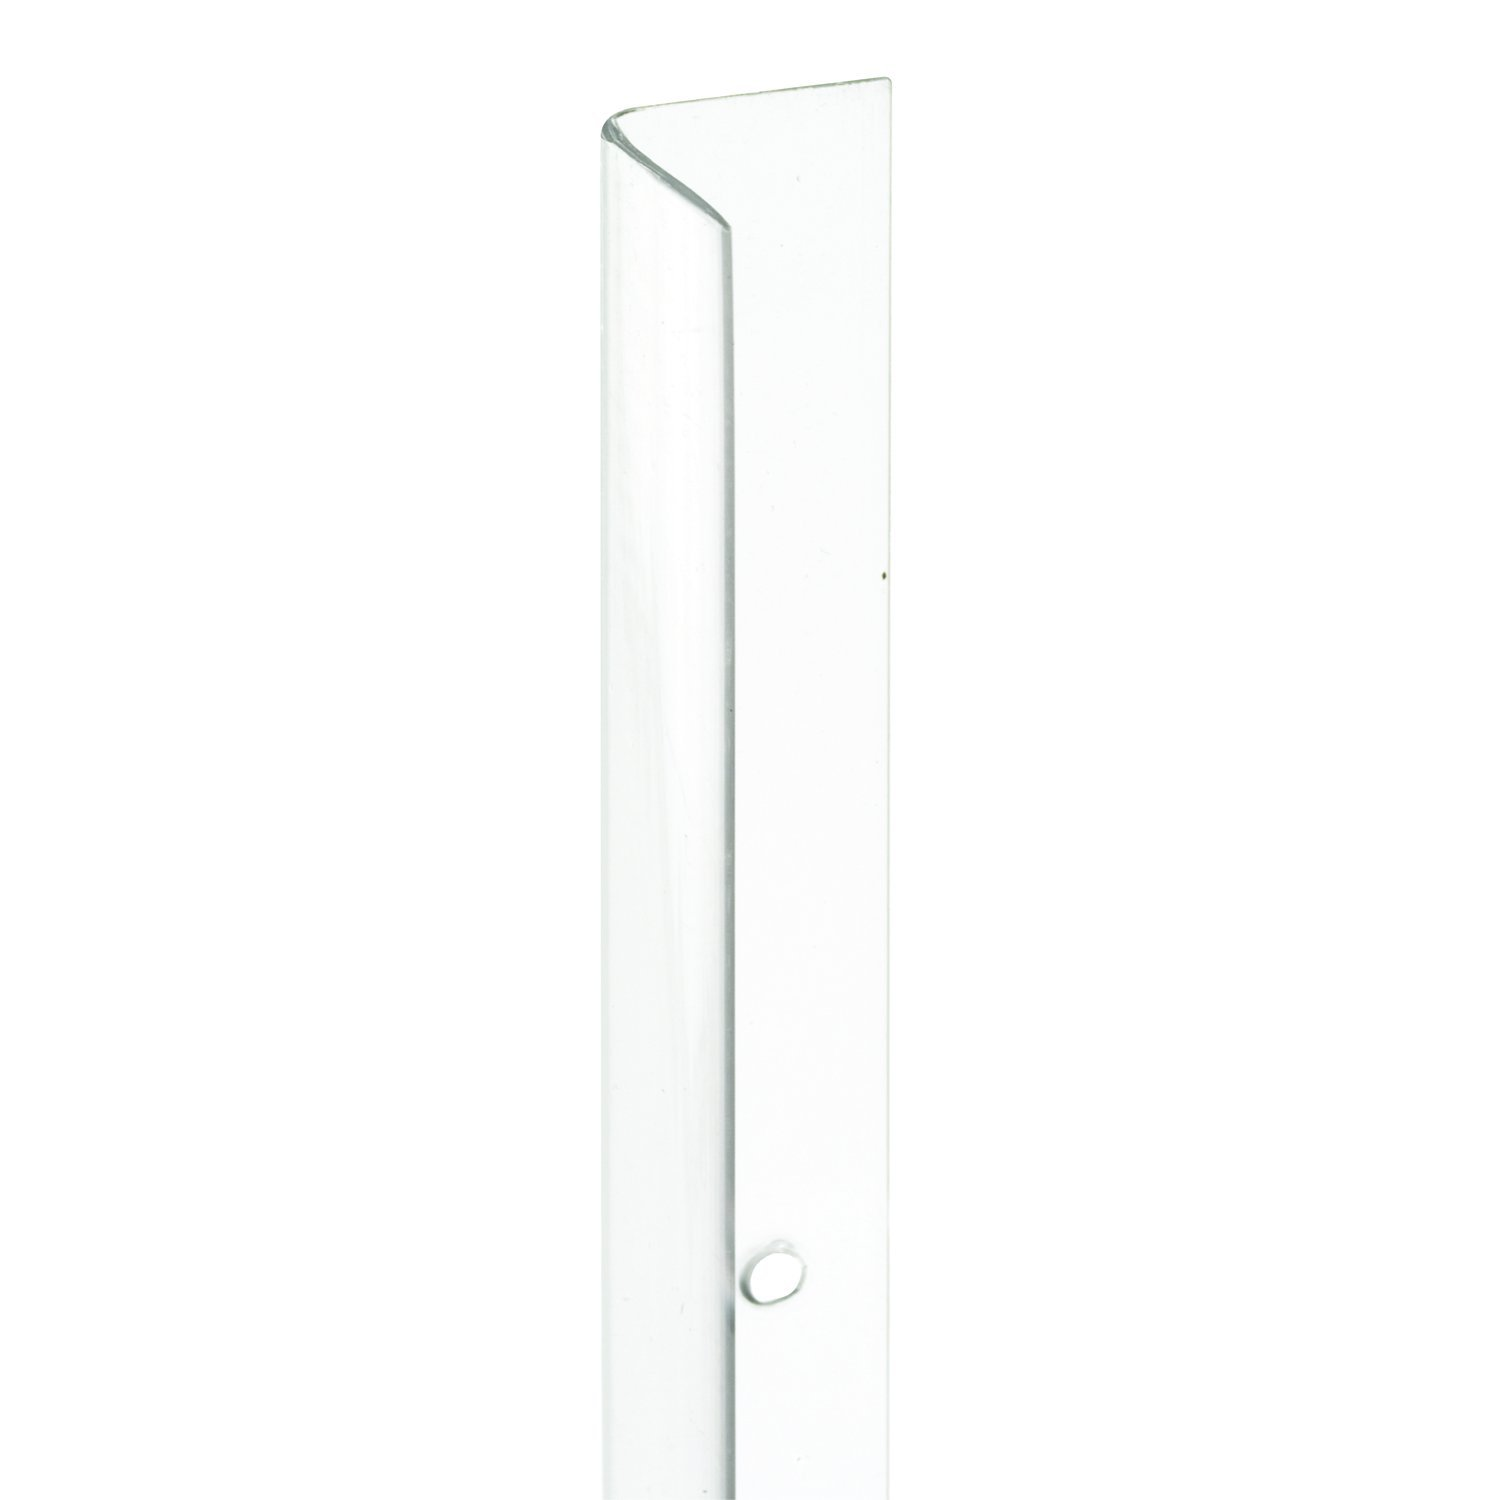 Prime-Line Products U 9129-4 Corner Shield, 3/4 In. x 48 In, Vinyl, Clear, Pack of 4 by PRIME-LINE